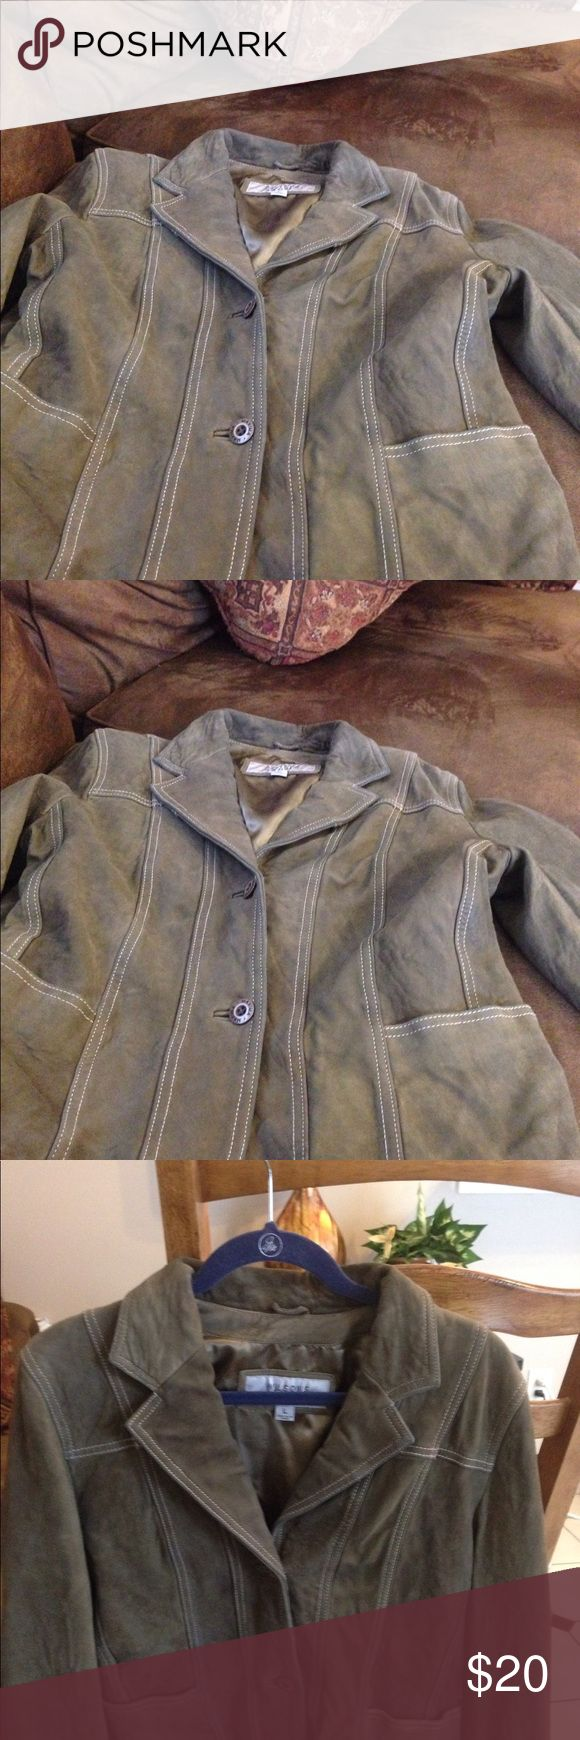 Vintage Leather Women's Jacket L Wilson leather maxima jacket, nice condition.see last pic tiny hole in back easy repair Wilsons Leather Jackets & Coats